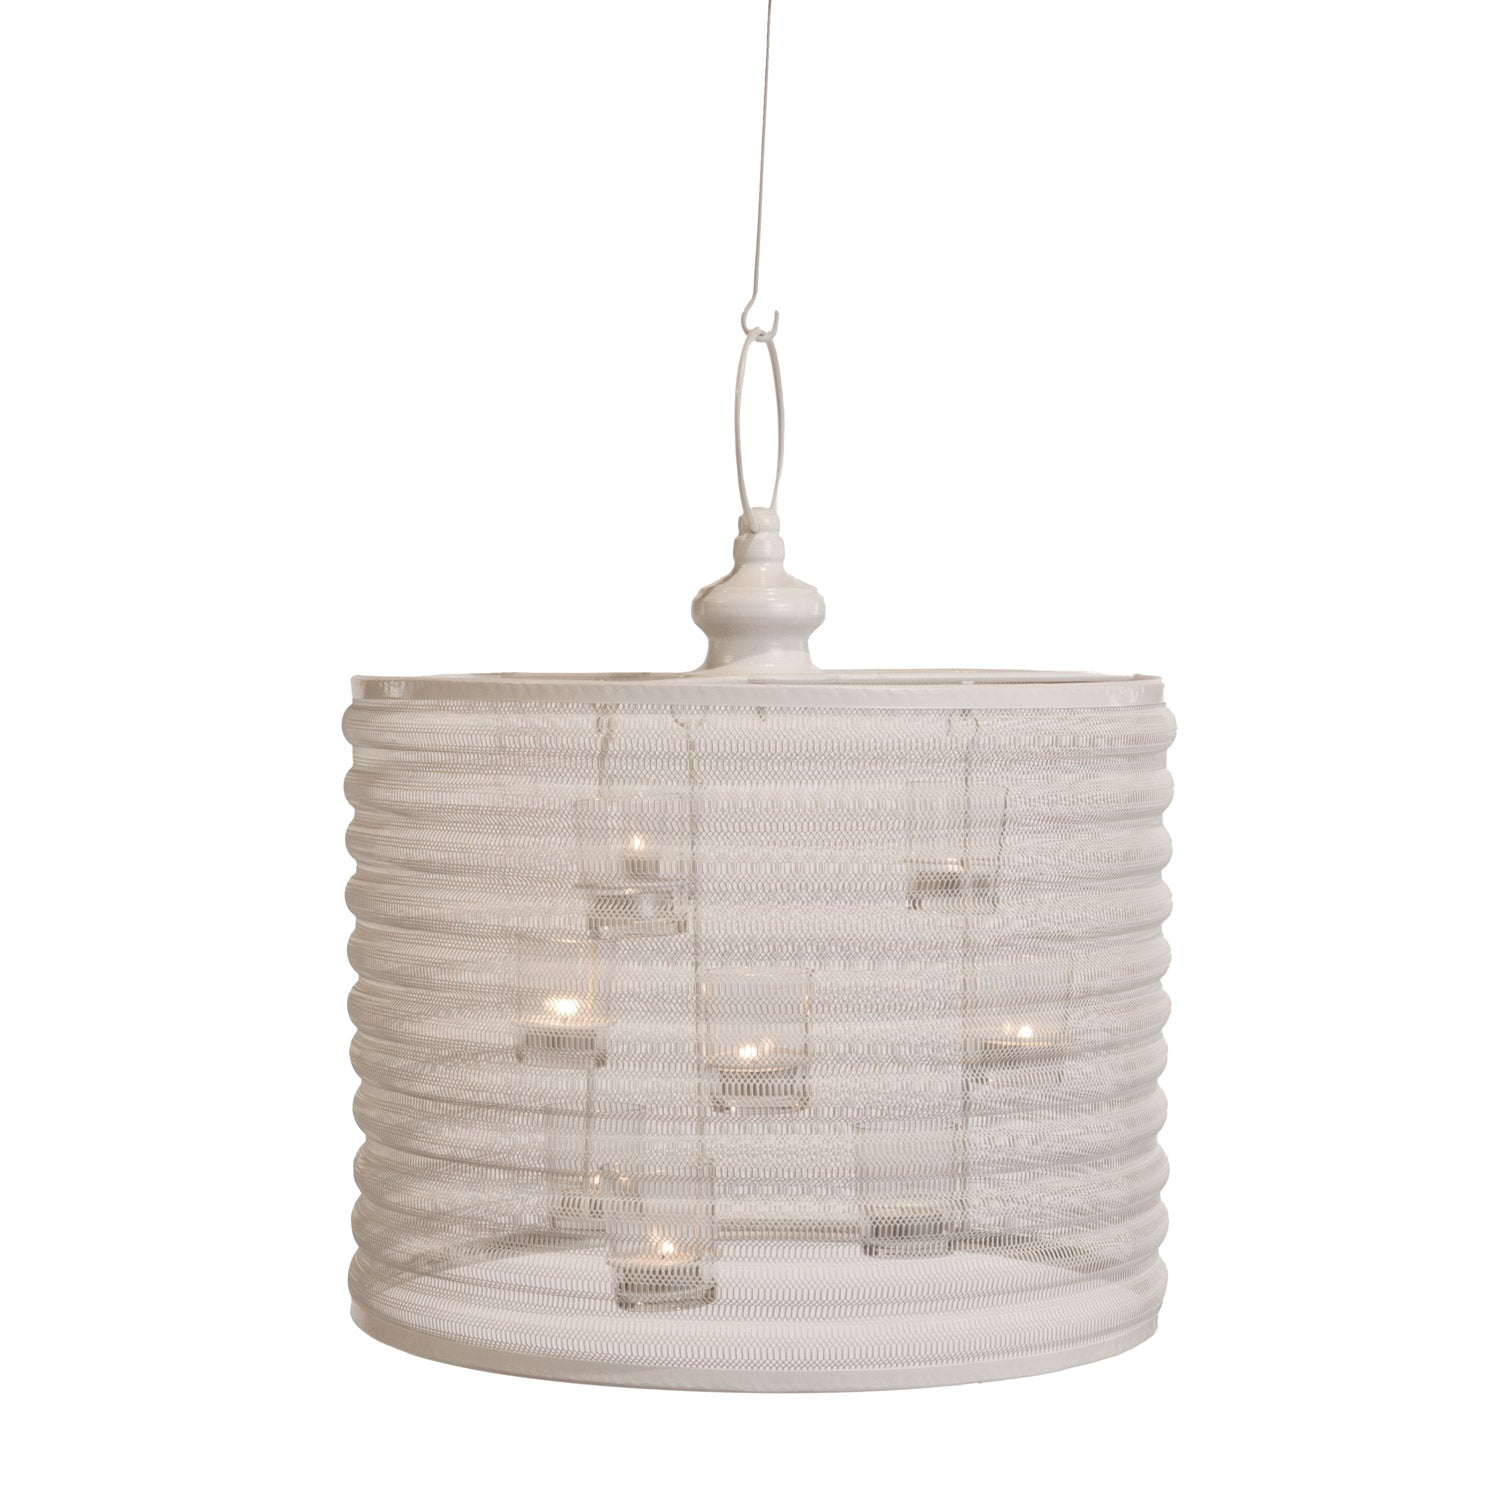 Aria Candle Chandelier, 16-inch diameter, white isolated on a white background.